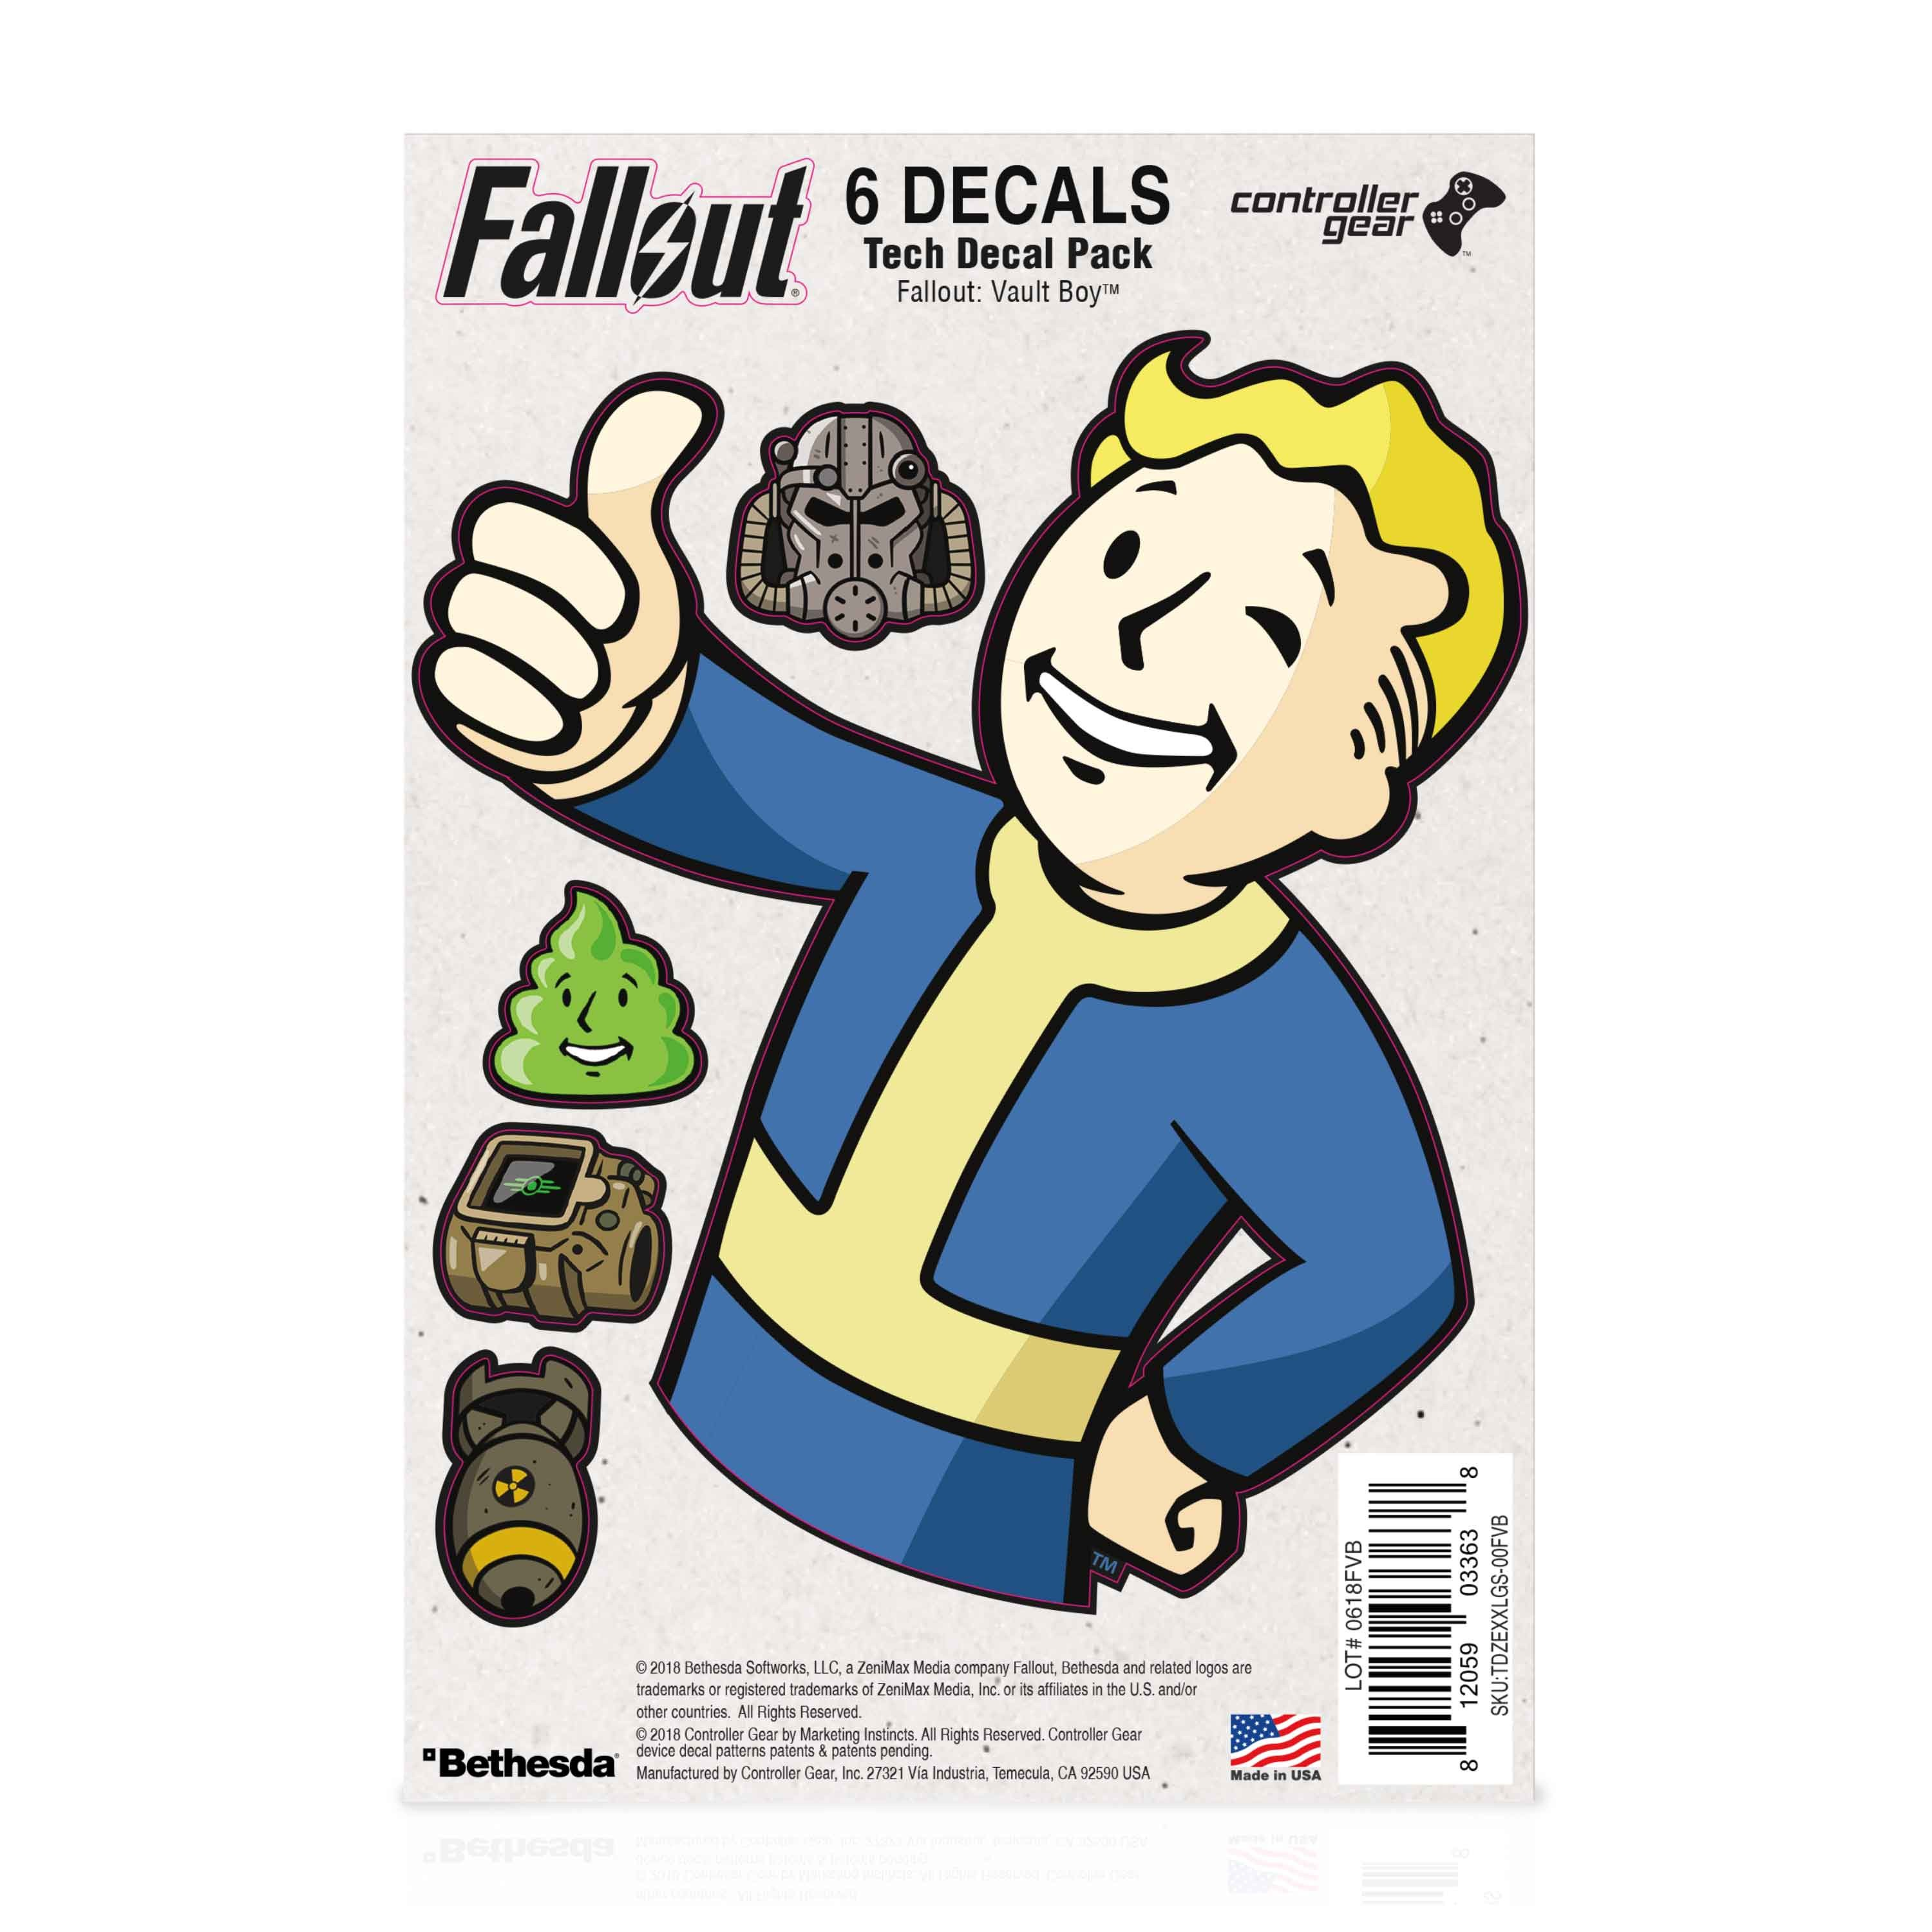 Fallout: Vault Boy- Large Character Tech Skin Pack - Officially Licensed by Bethesda